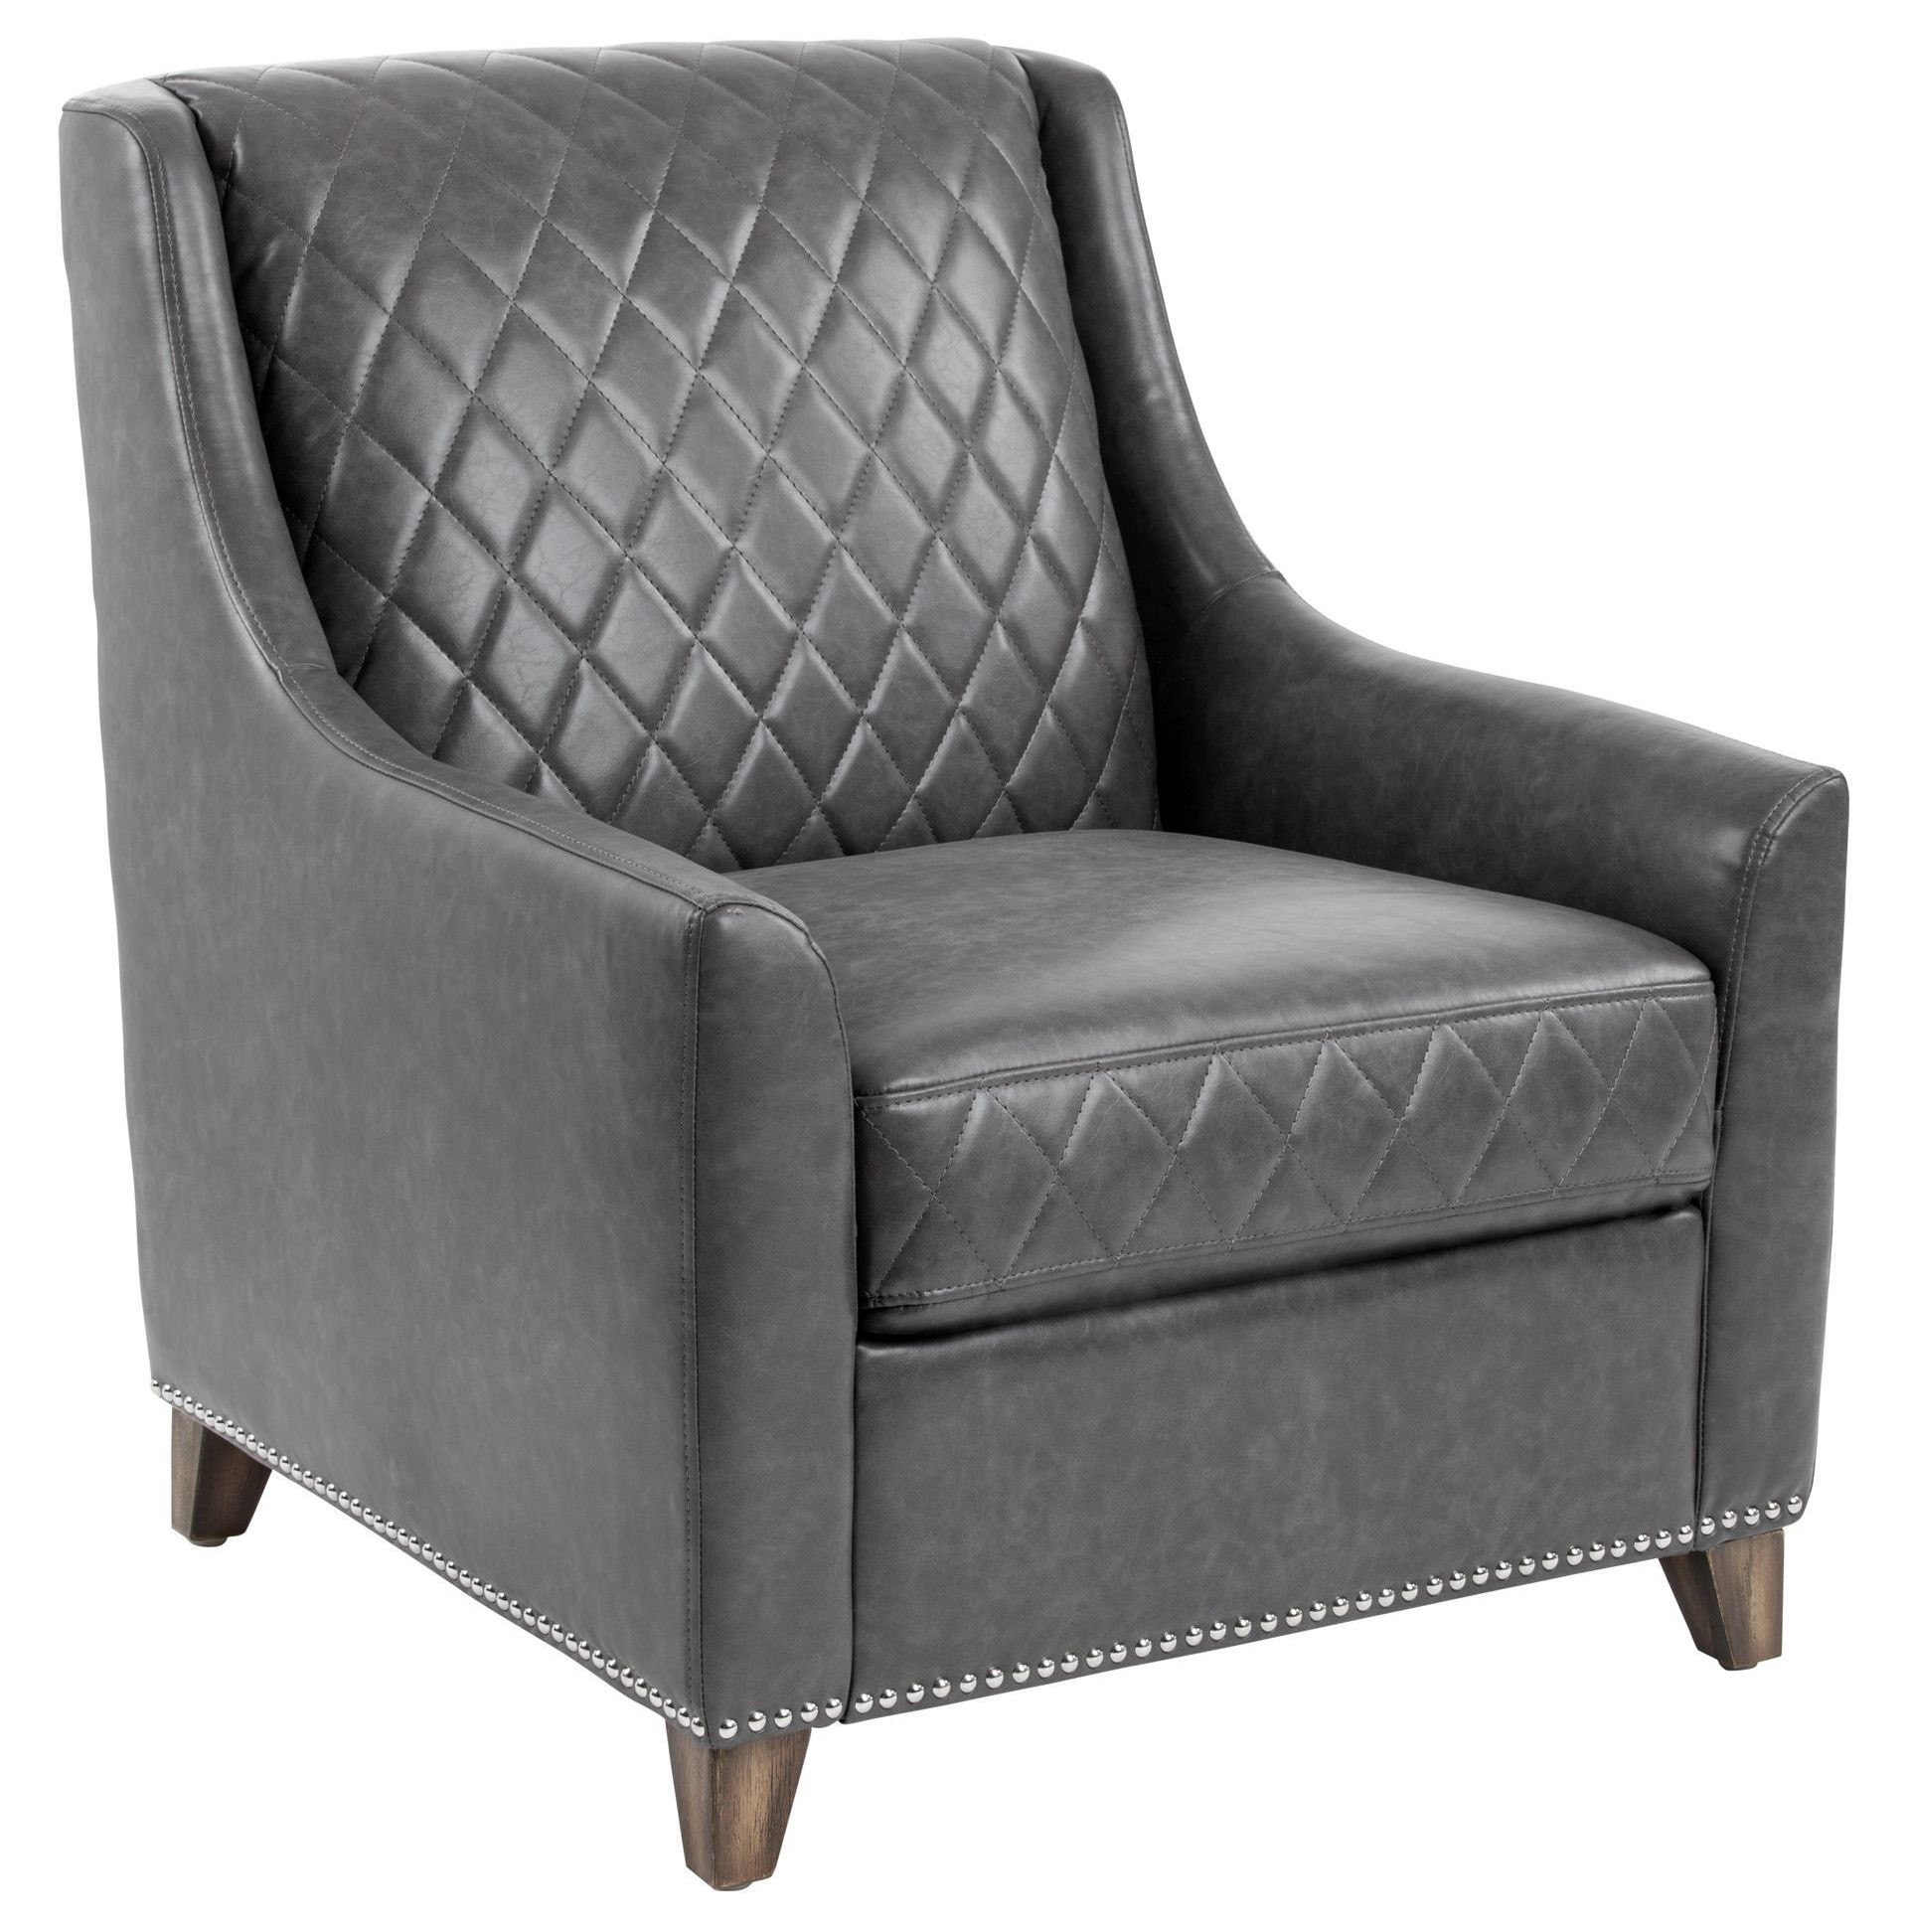 bergamo sectional leather modern sofa gray brothers furniture ash bonded armchair from sunpan